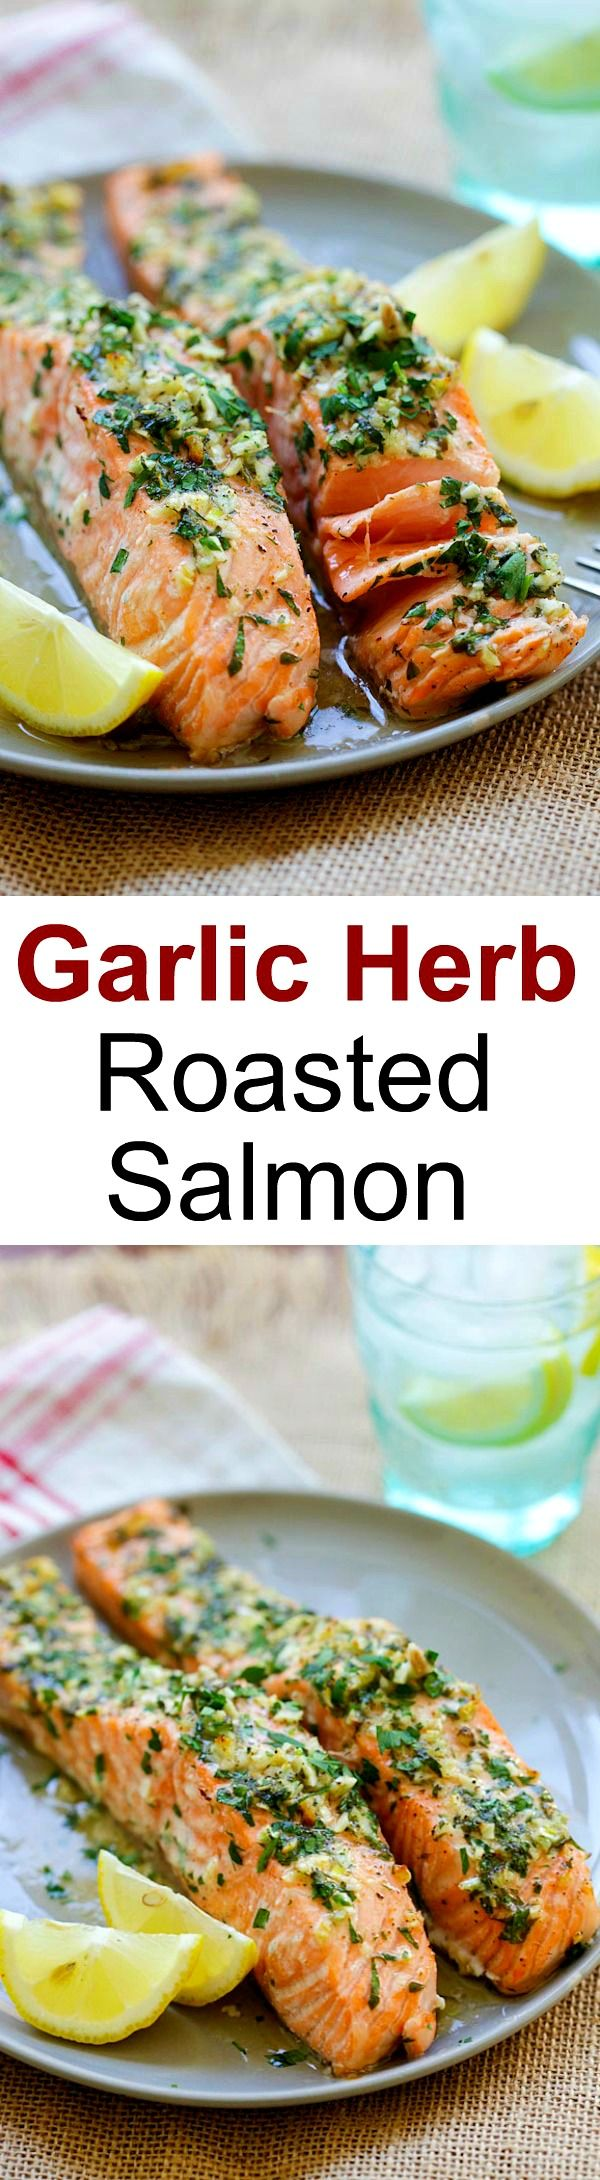 Garlic Herb Roasted Salmon – Made with butter, garlic, herb, lemon and dinner is ready in 20 minutes